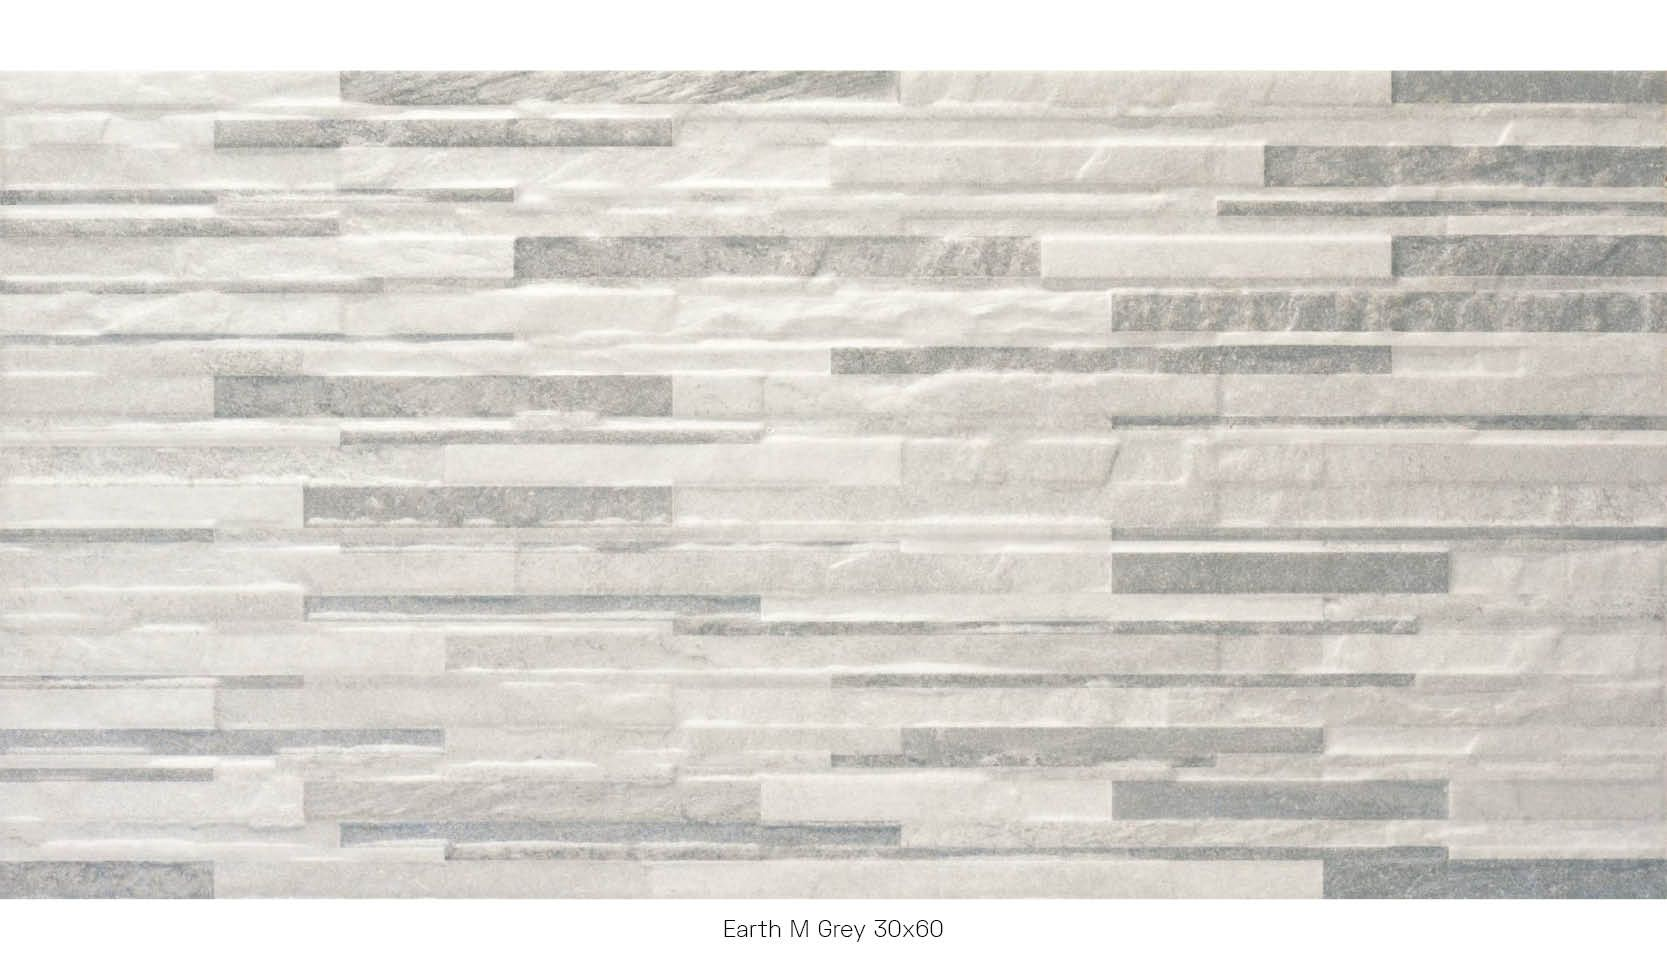 Earth M Grey 30 x 60